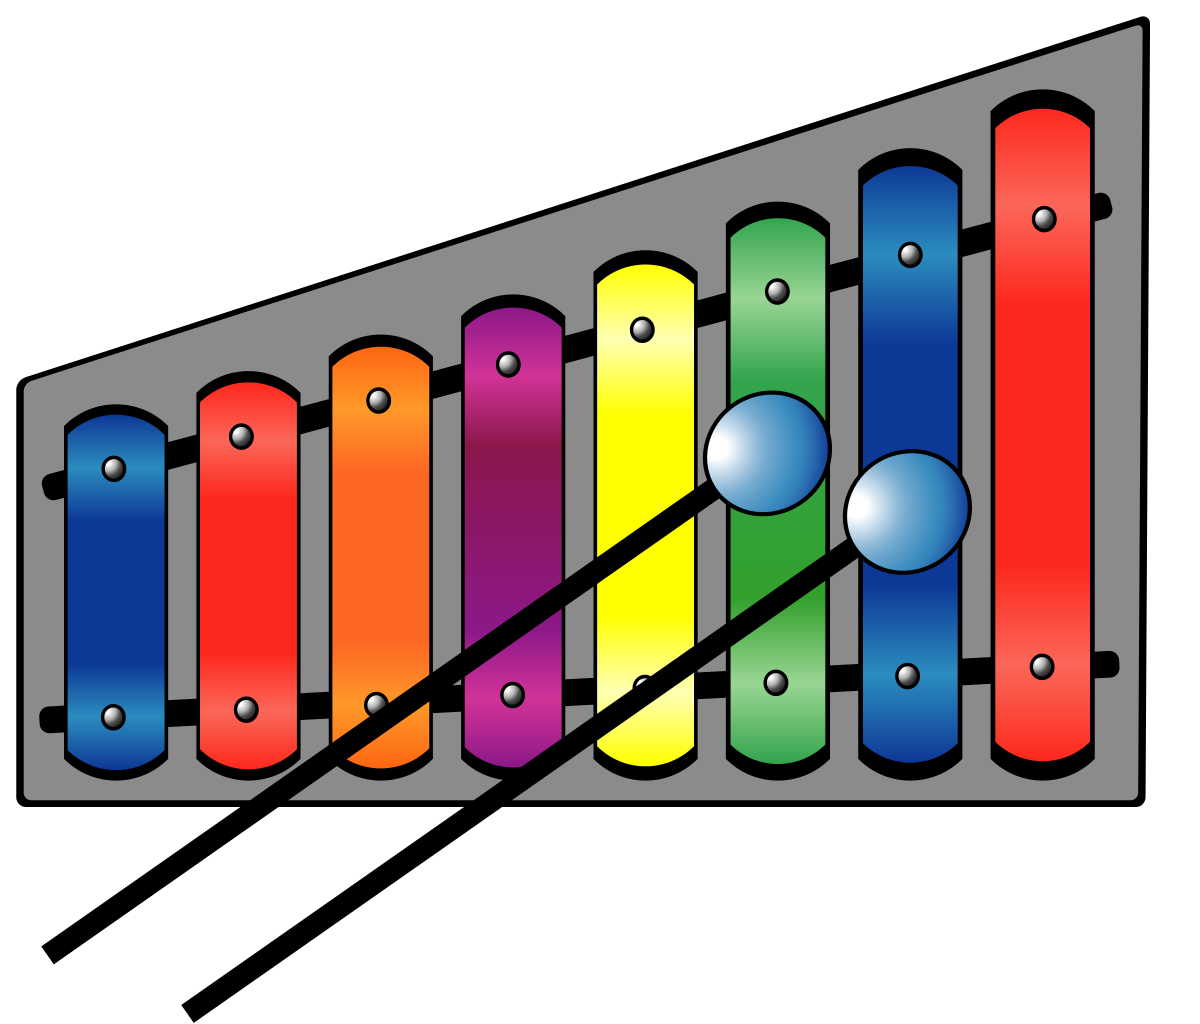 Xylophone clipart tool. File colourful svg wikimedia